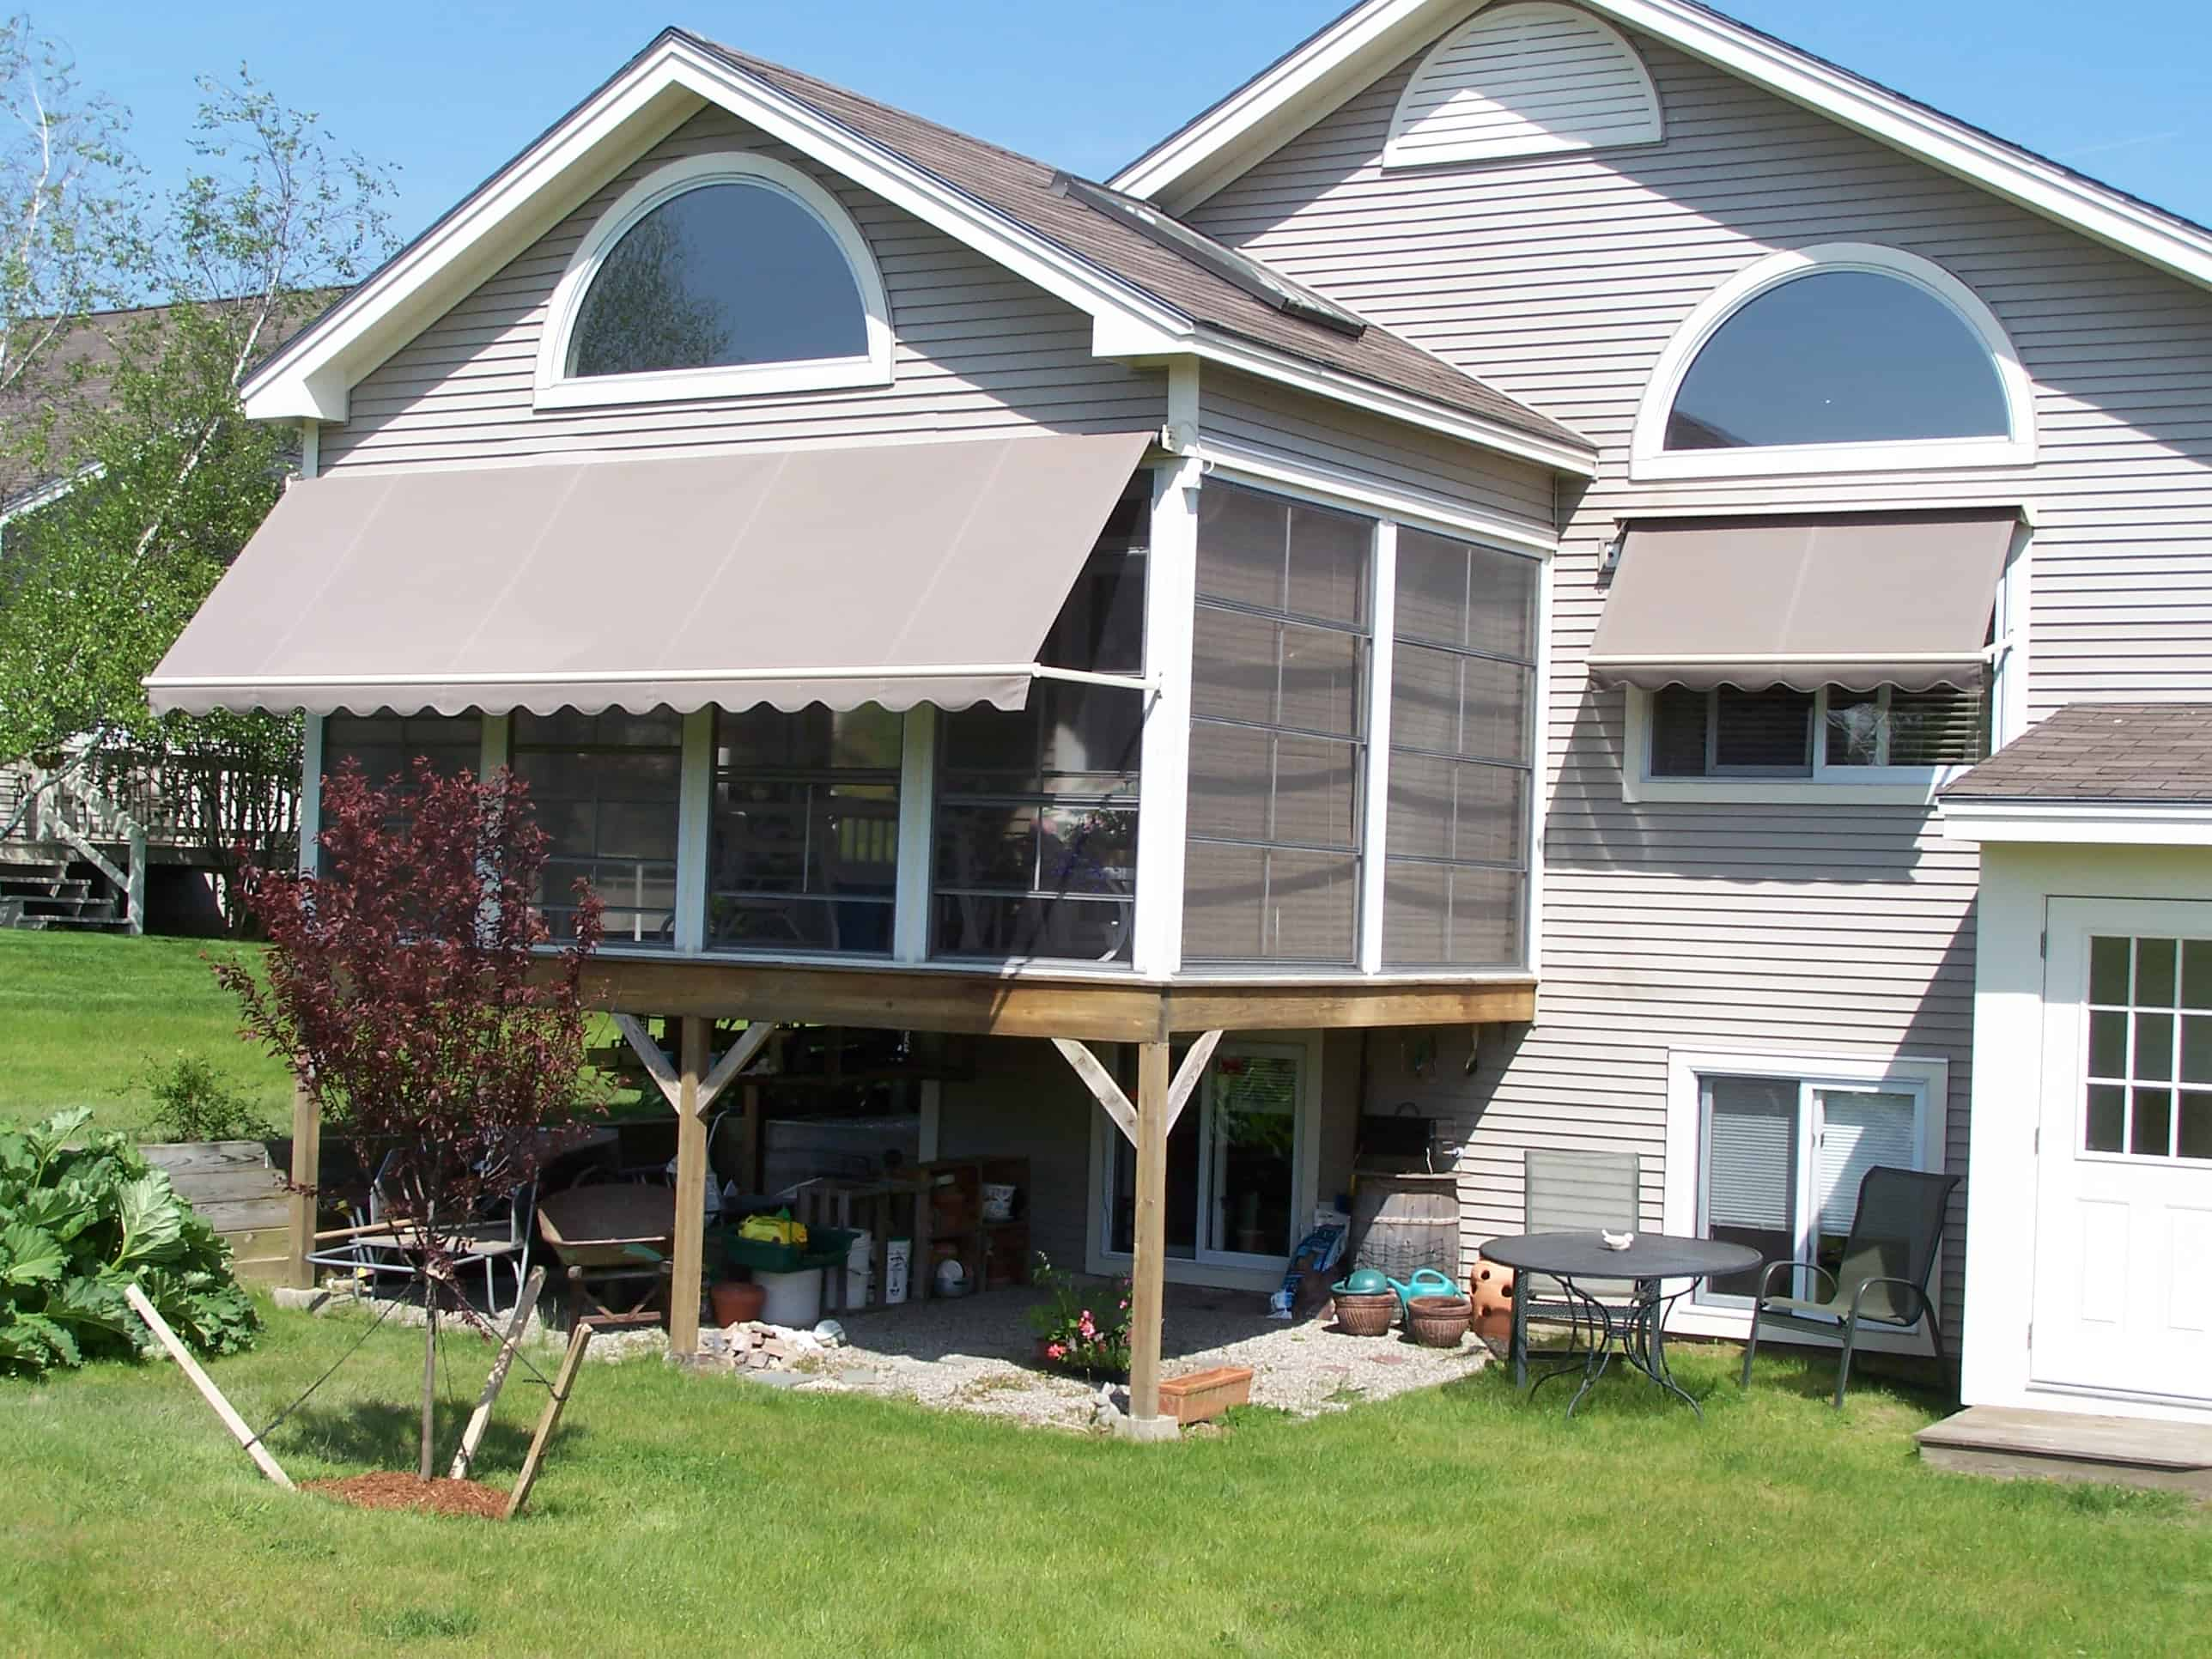 Rising Energy Costs & Tight Budgets Shine Light on Awning ...